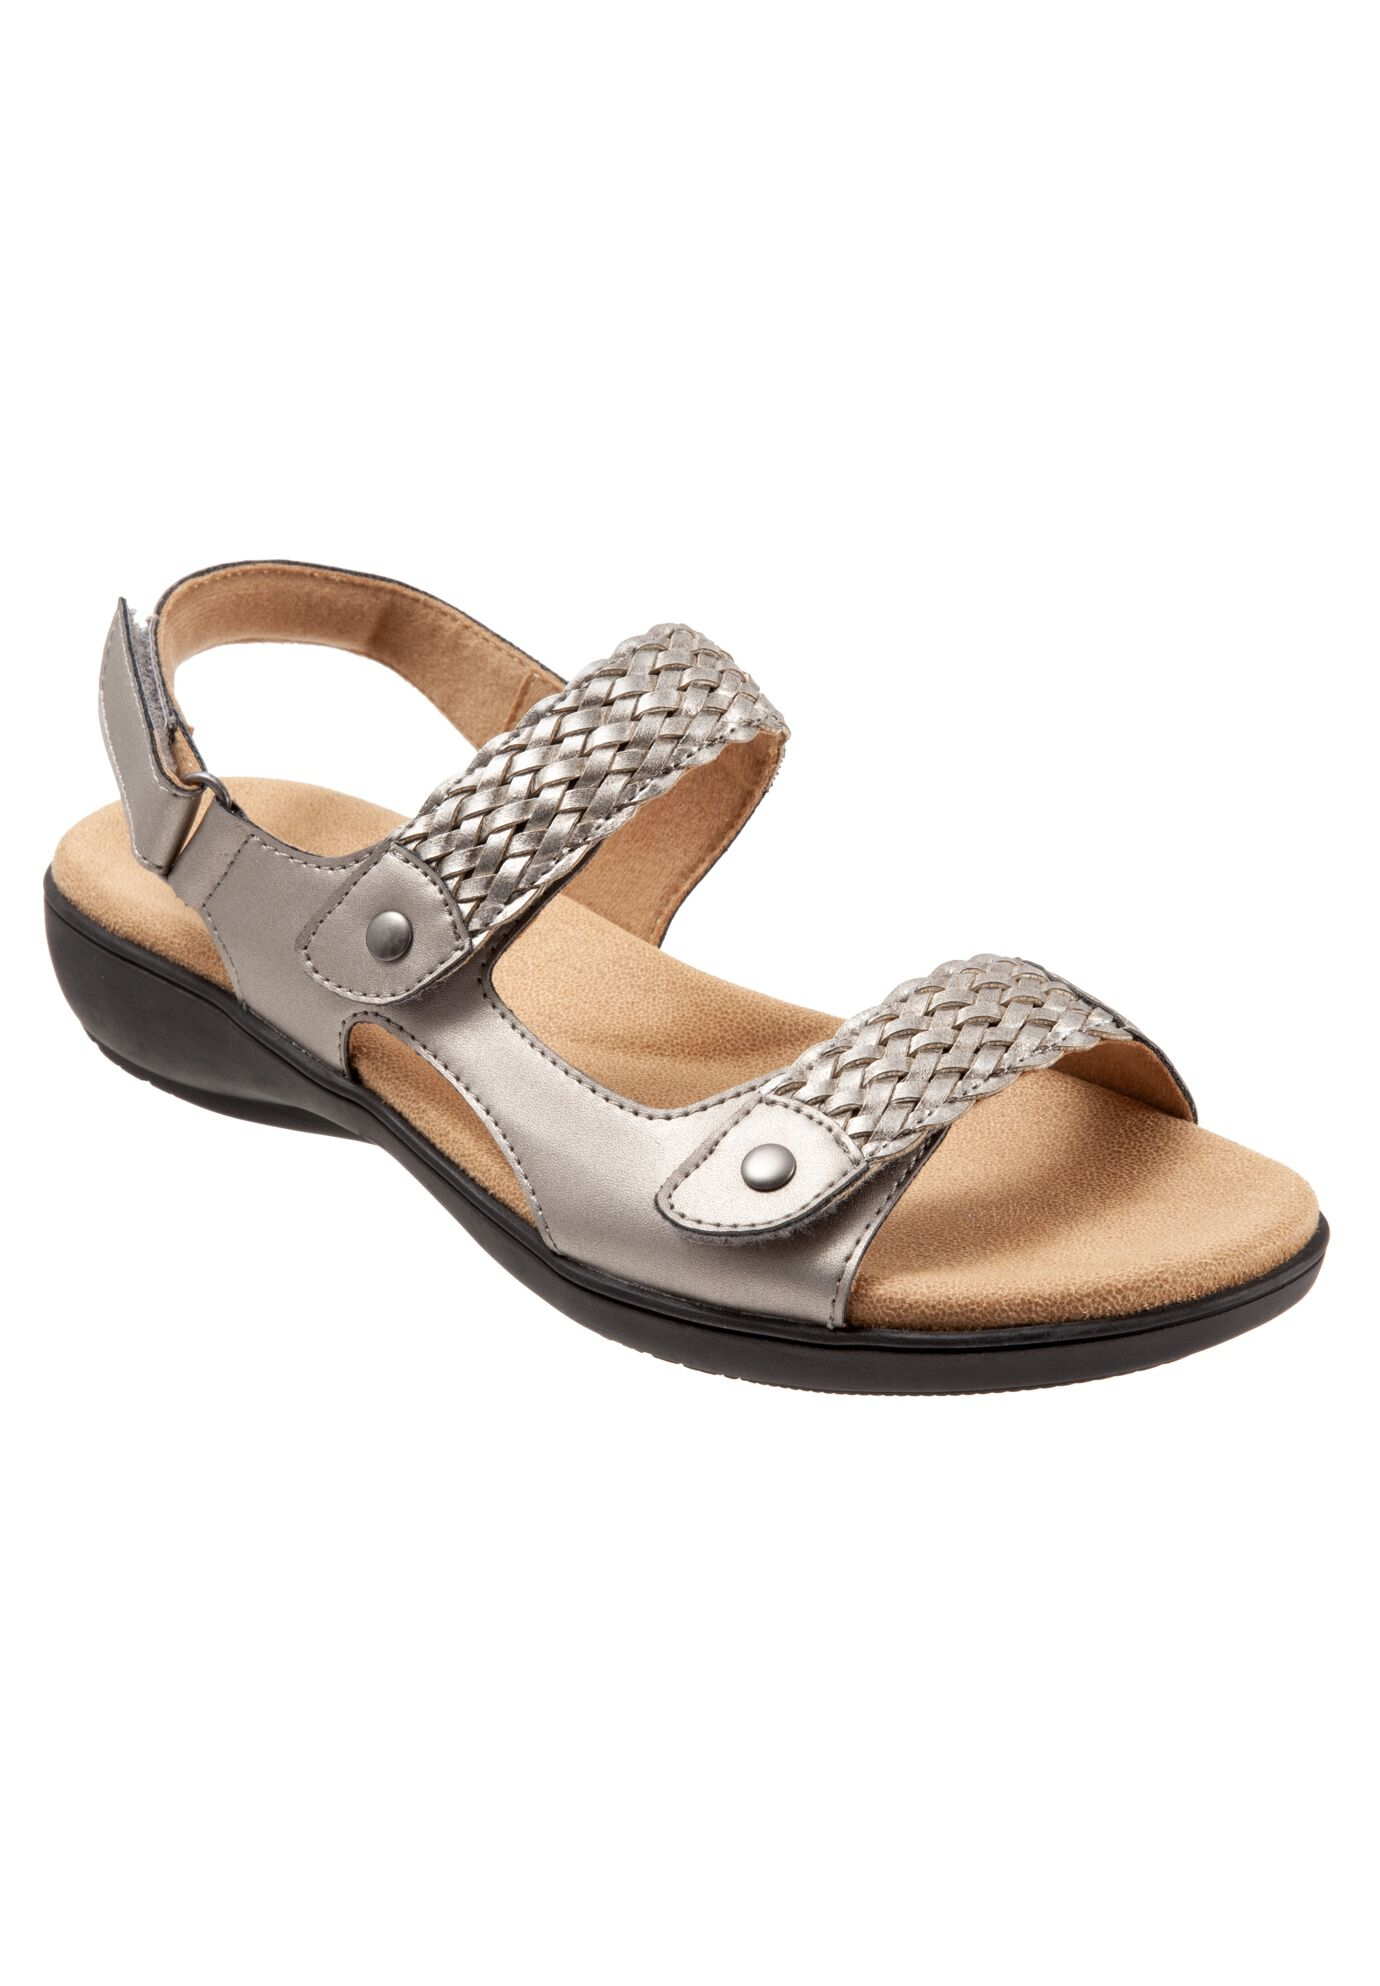 Extra Wide Width Sandals for Women